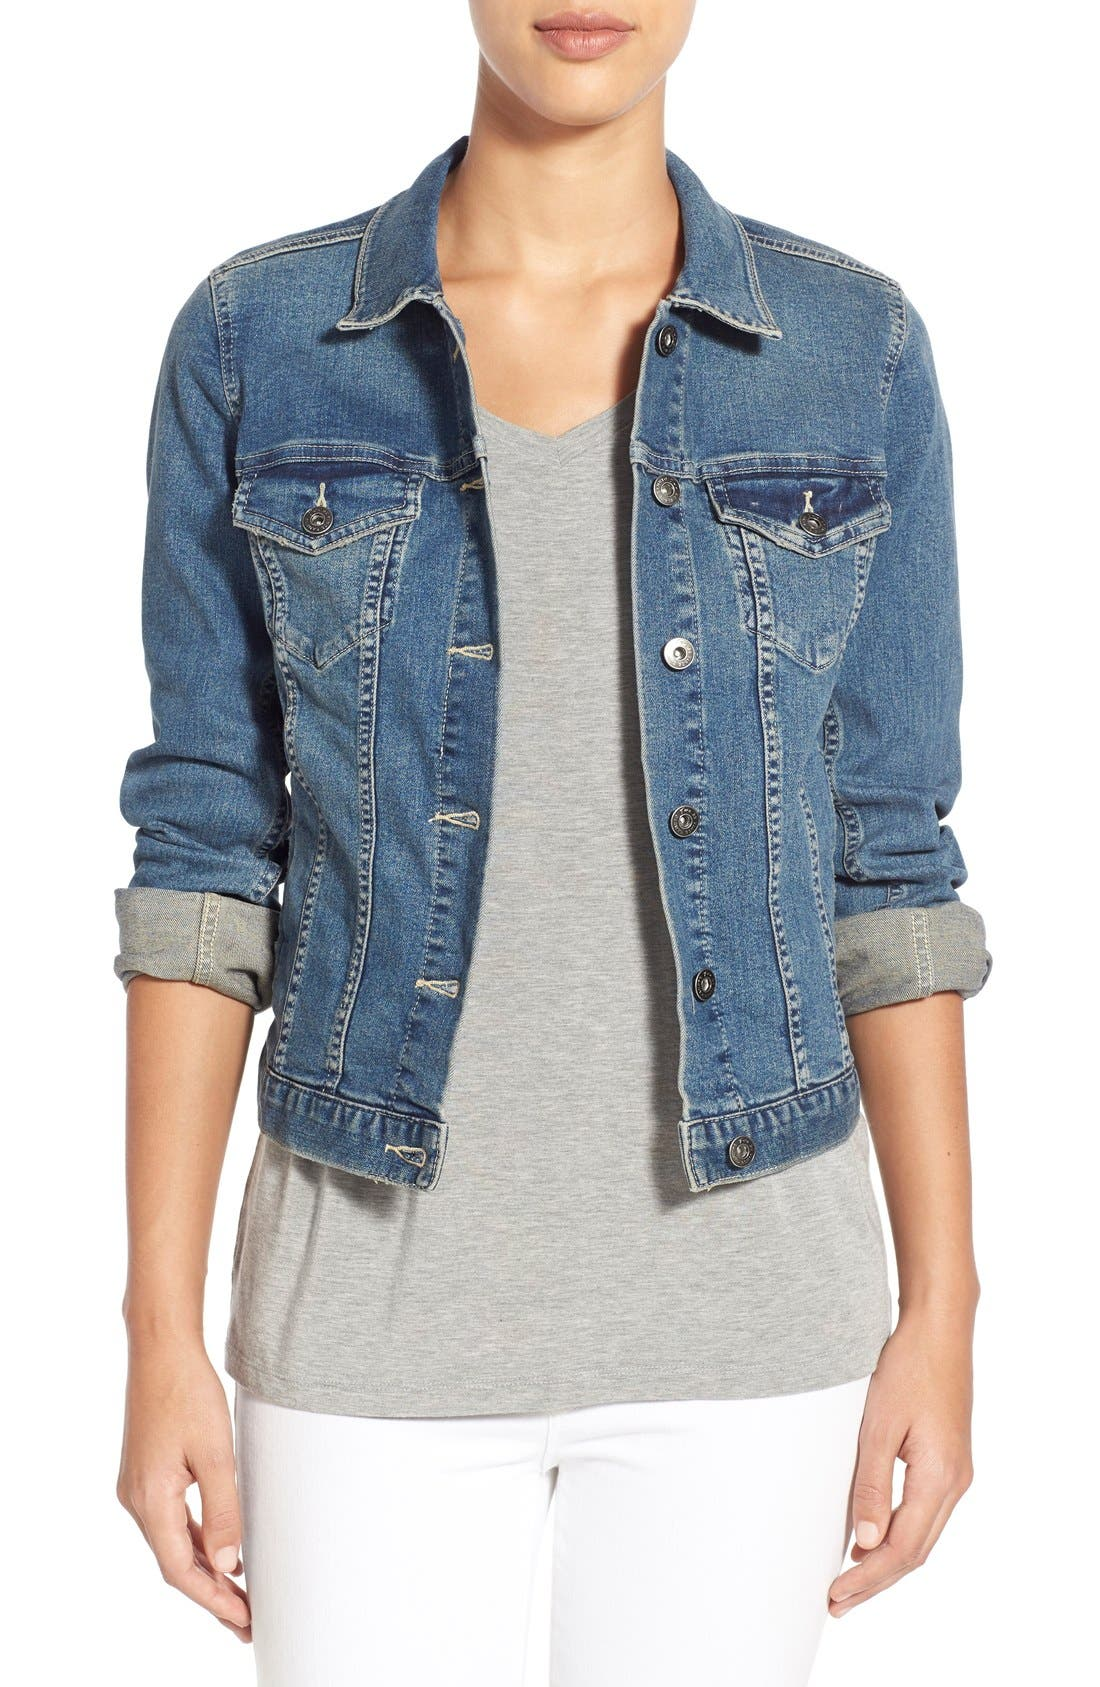 VINCE CAMUTO, Two by Vince Camuto Jean Jacket, Main thumbnail 1, color, AUTHENTIC